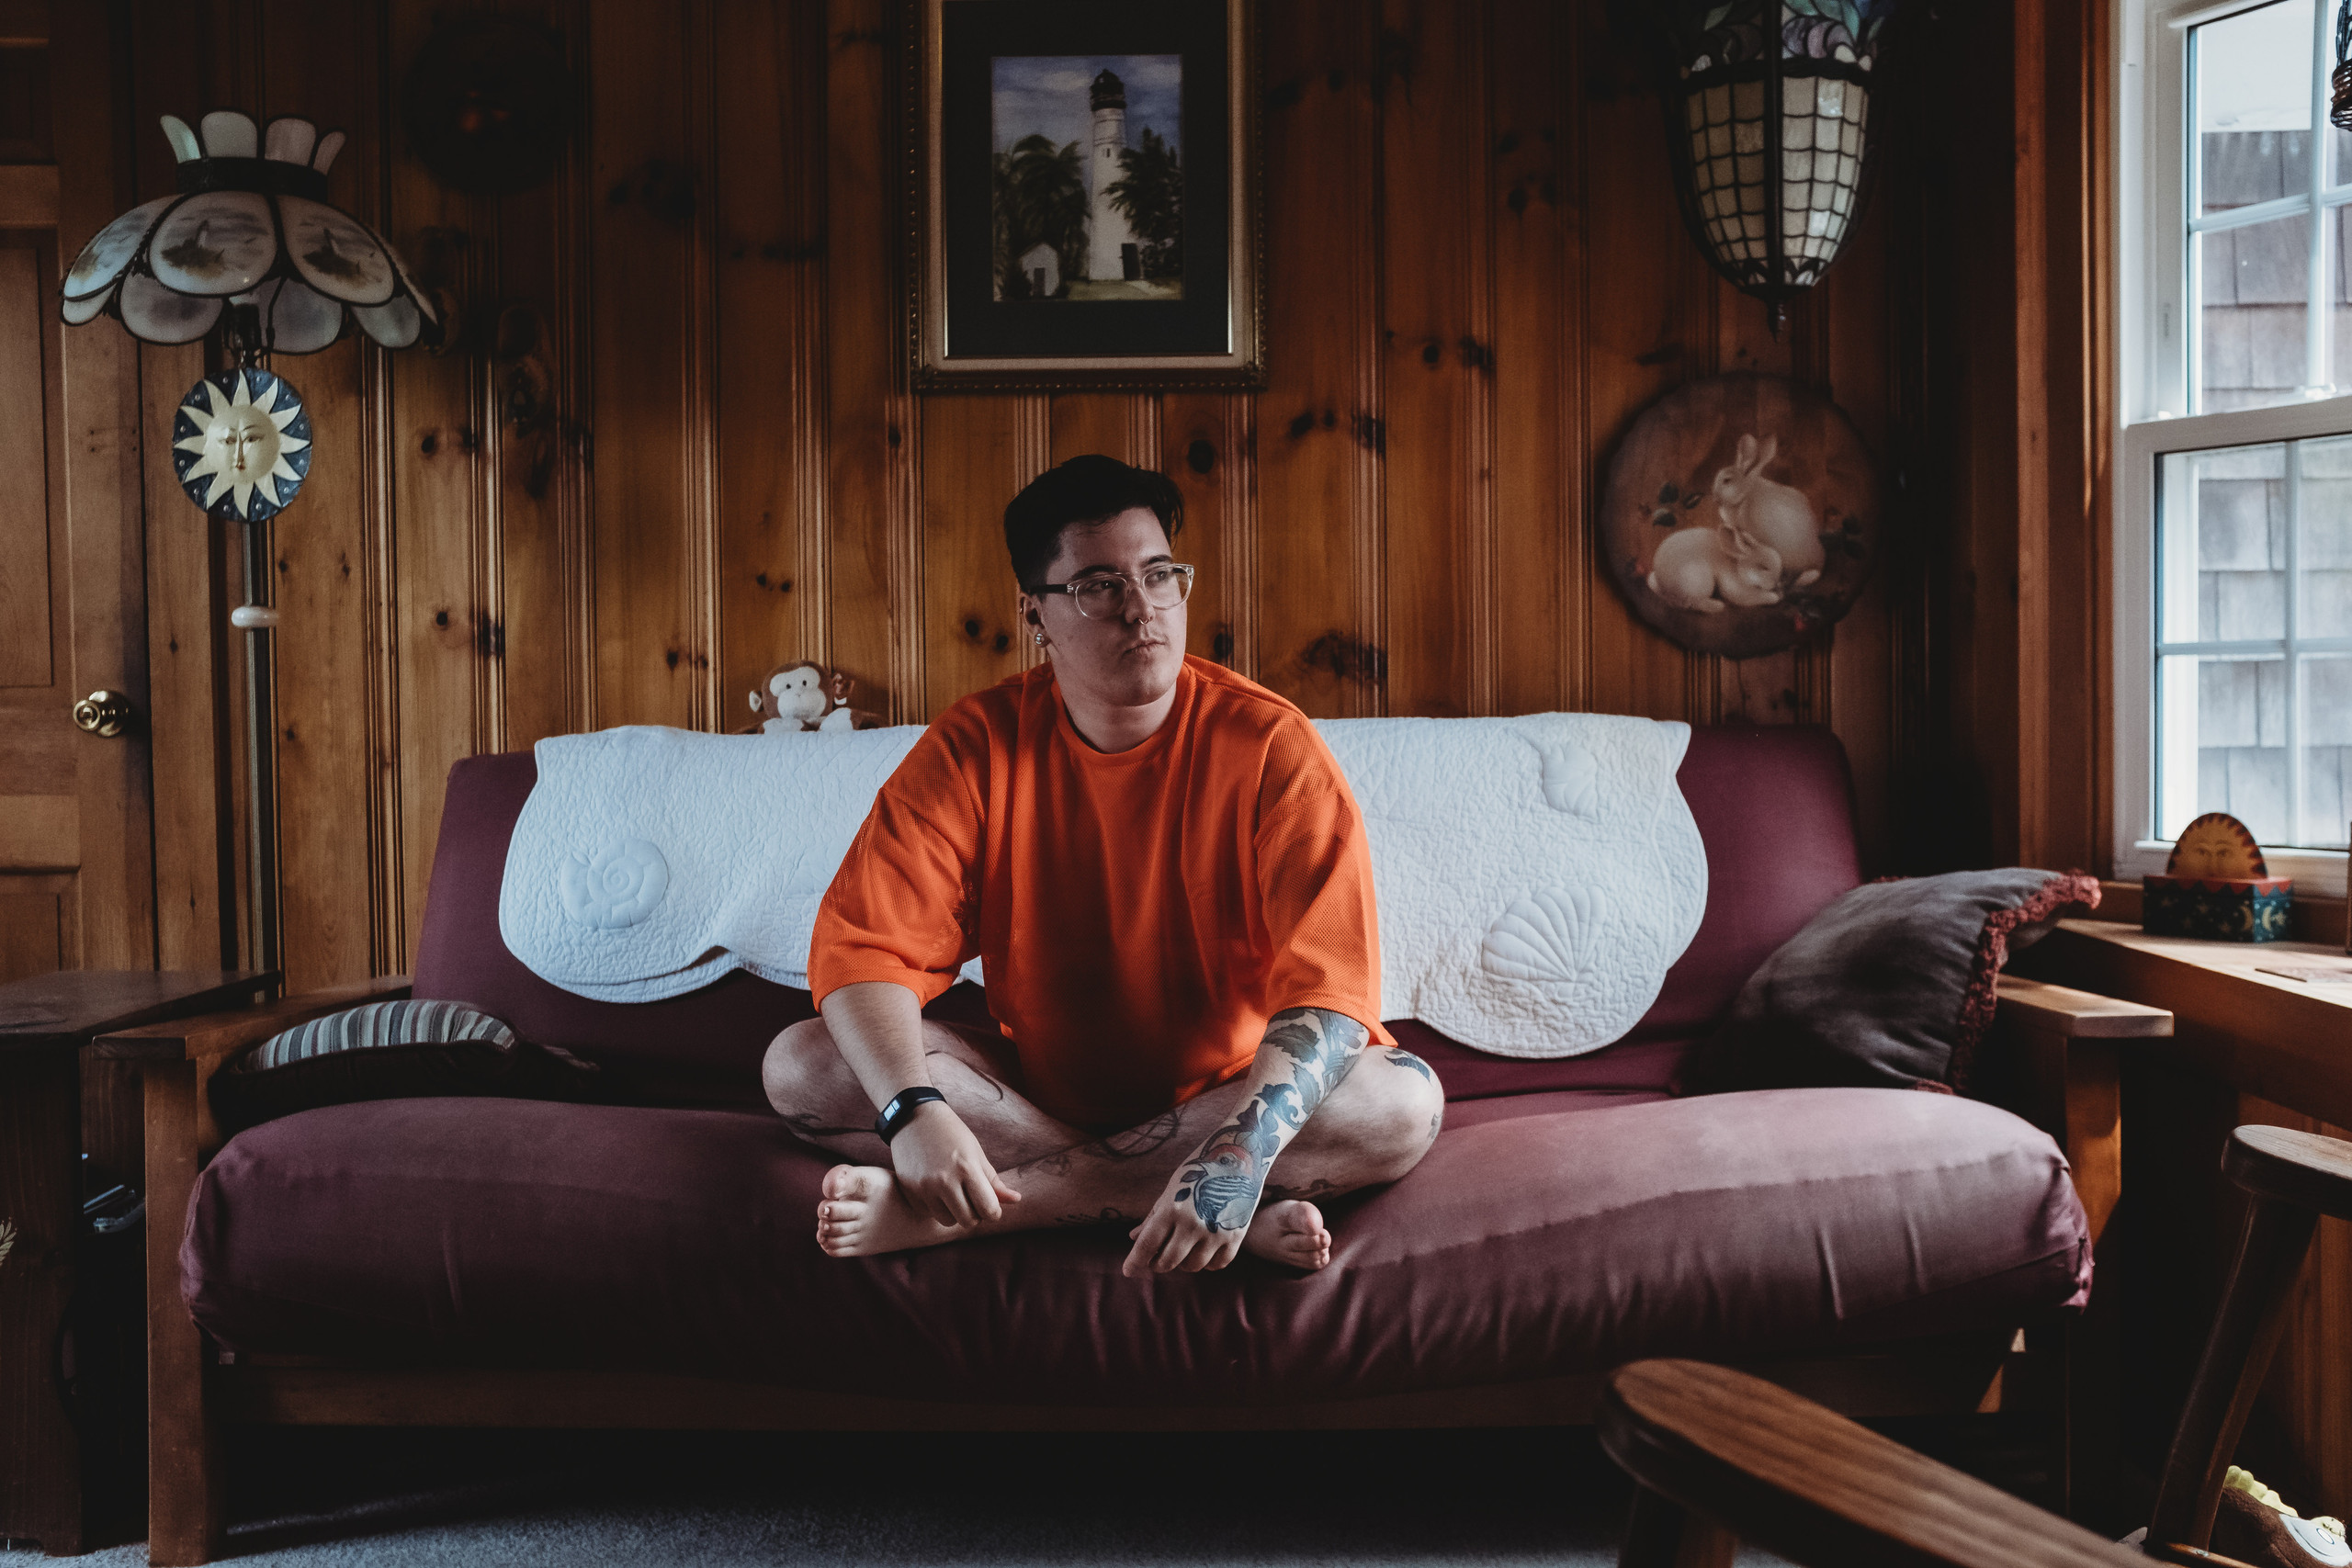 Sage Orville Shea sitting in a neon orange crop top in a vintage 70s room.